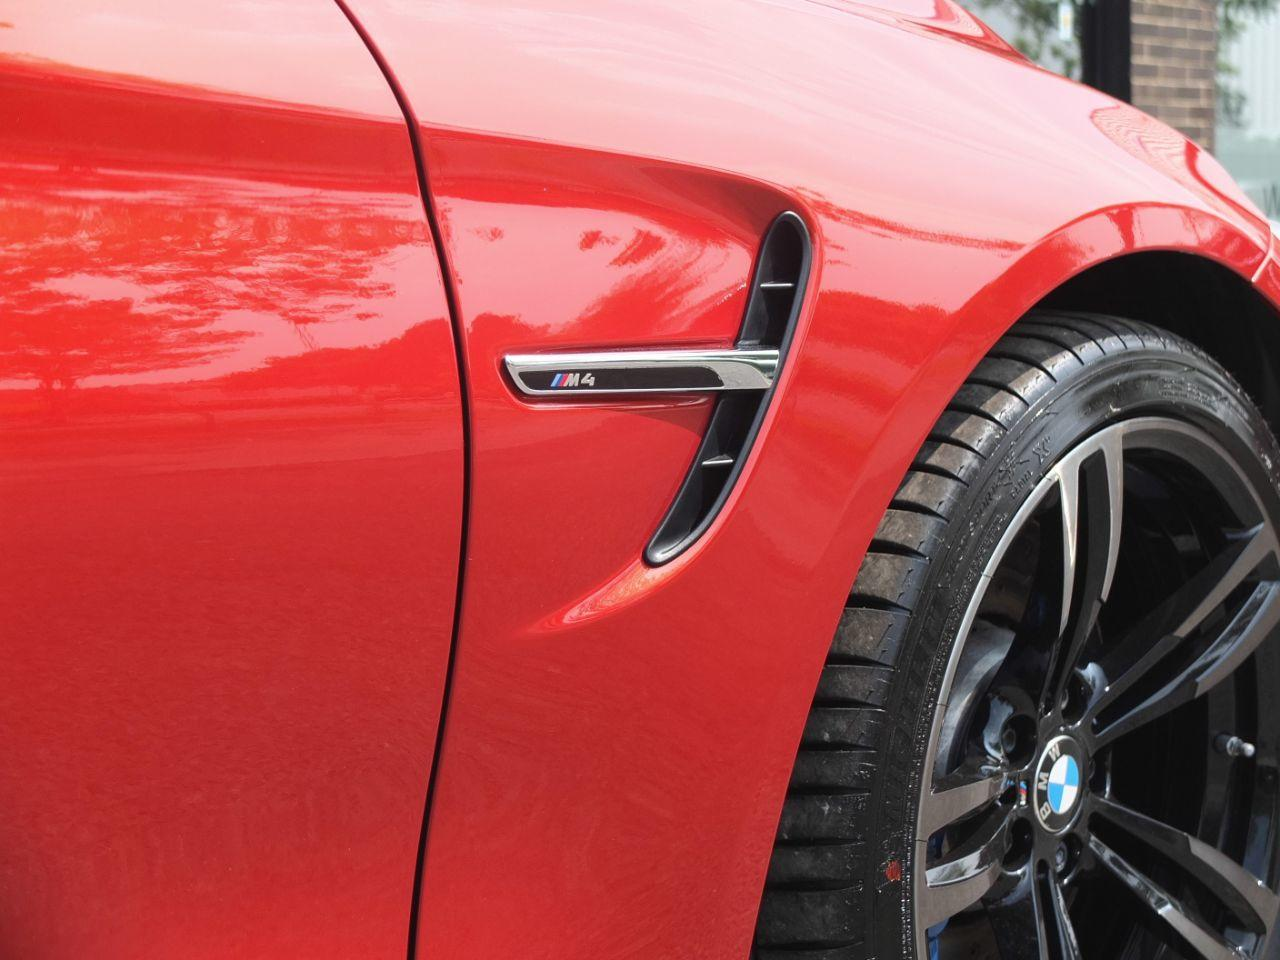 BMW M4 3.0 M4 Convertible DCT Convertible Petrol Sakhir Orange Metallic